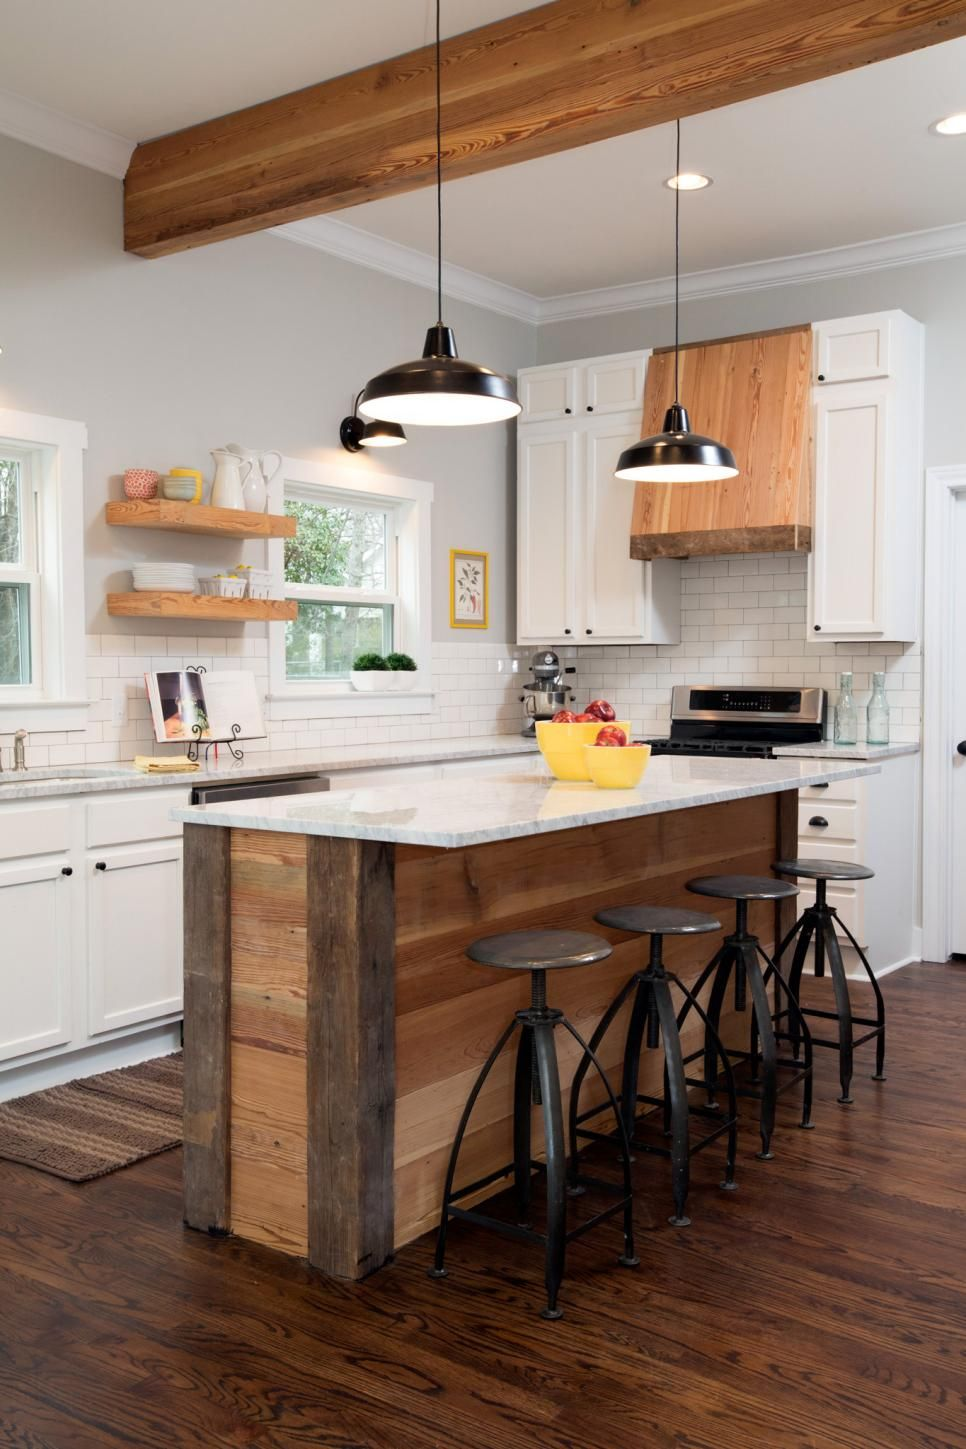 Fixer upper double kitchen island - Chip And Joanna Take On Their Biggest Fixer Upper To Date When They Help Furniture Designer